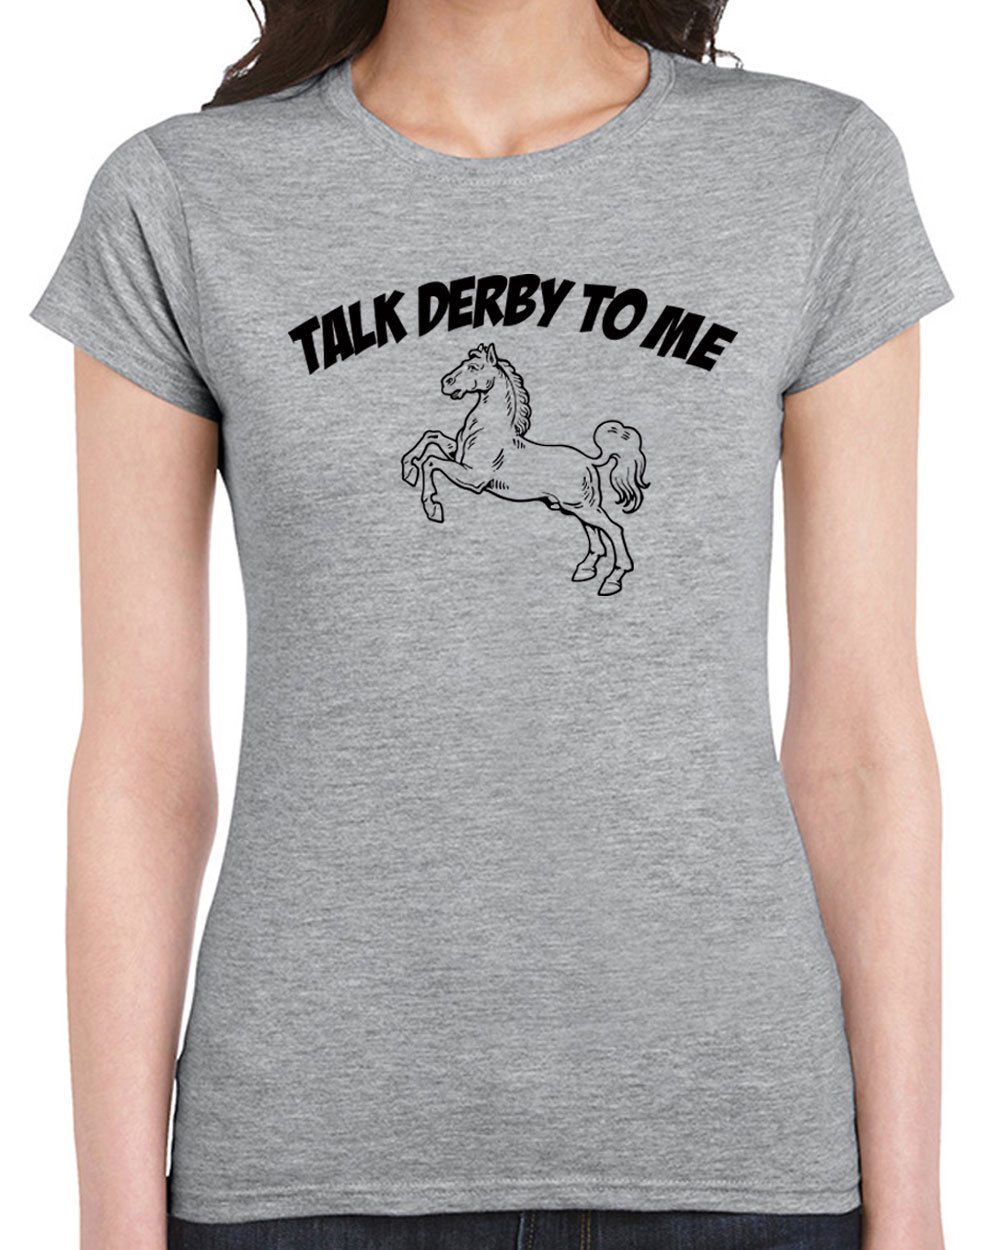 Primary image for 383 Talk Derby to Me womens T-shirt horse racing rude vulgar funny vintage retro